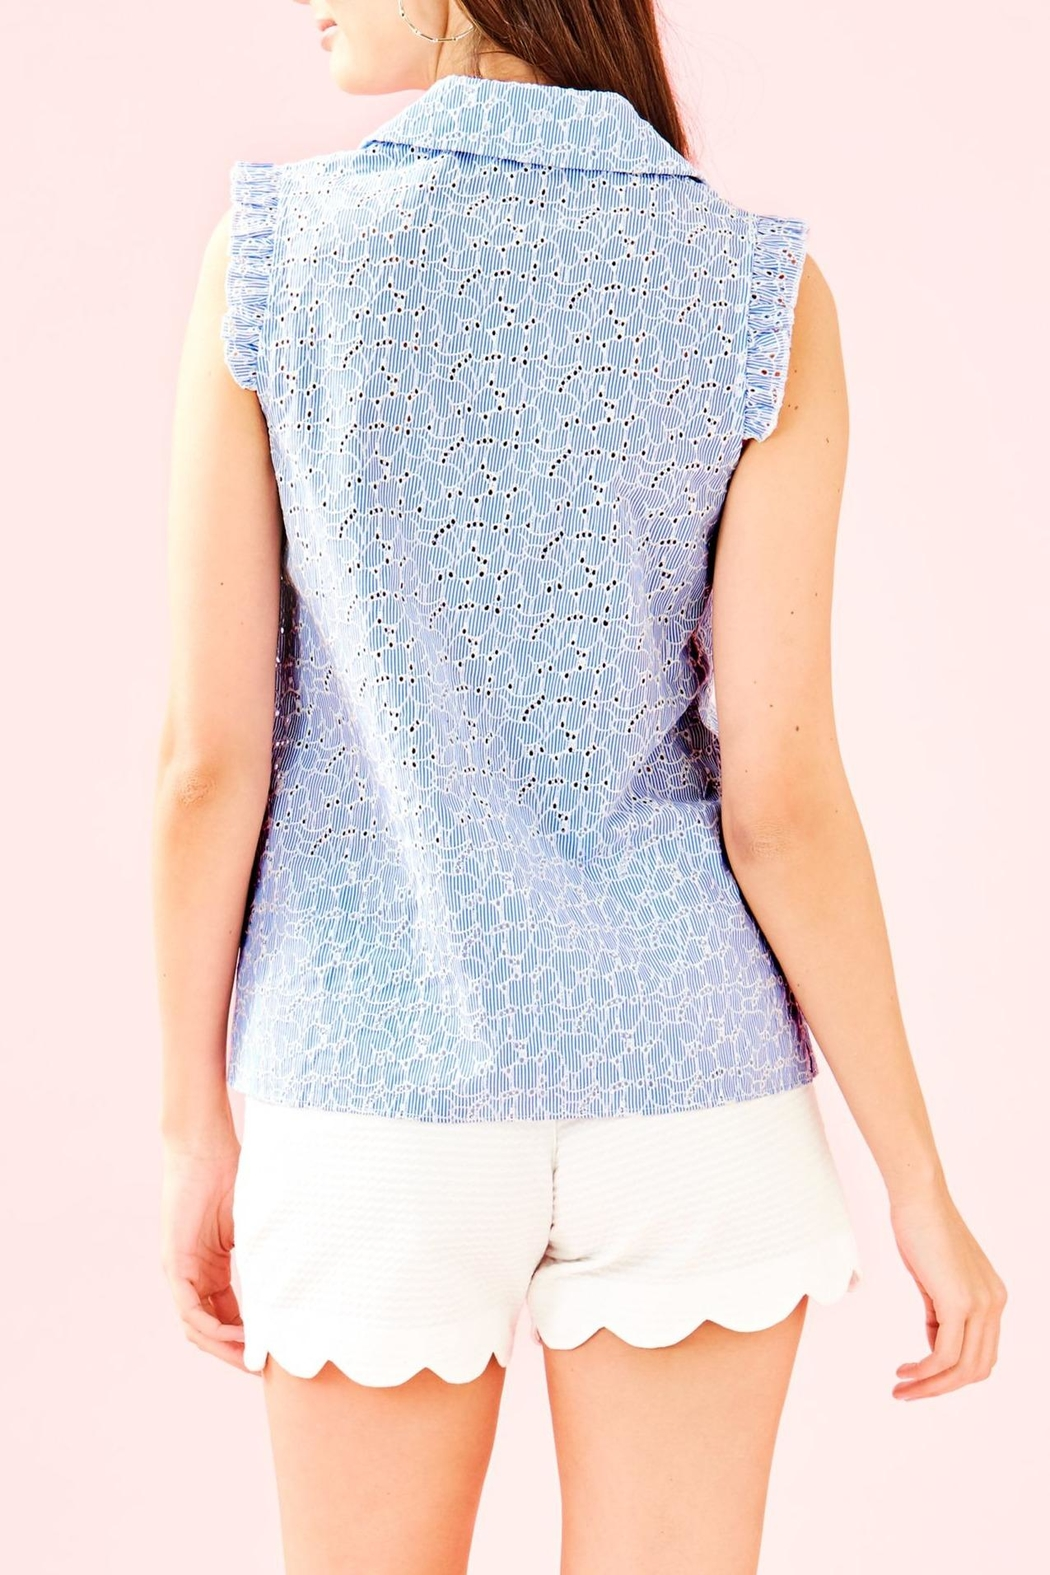 Lilly Pulitzer Lenox Button-Front Top - Front Full Image